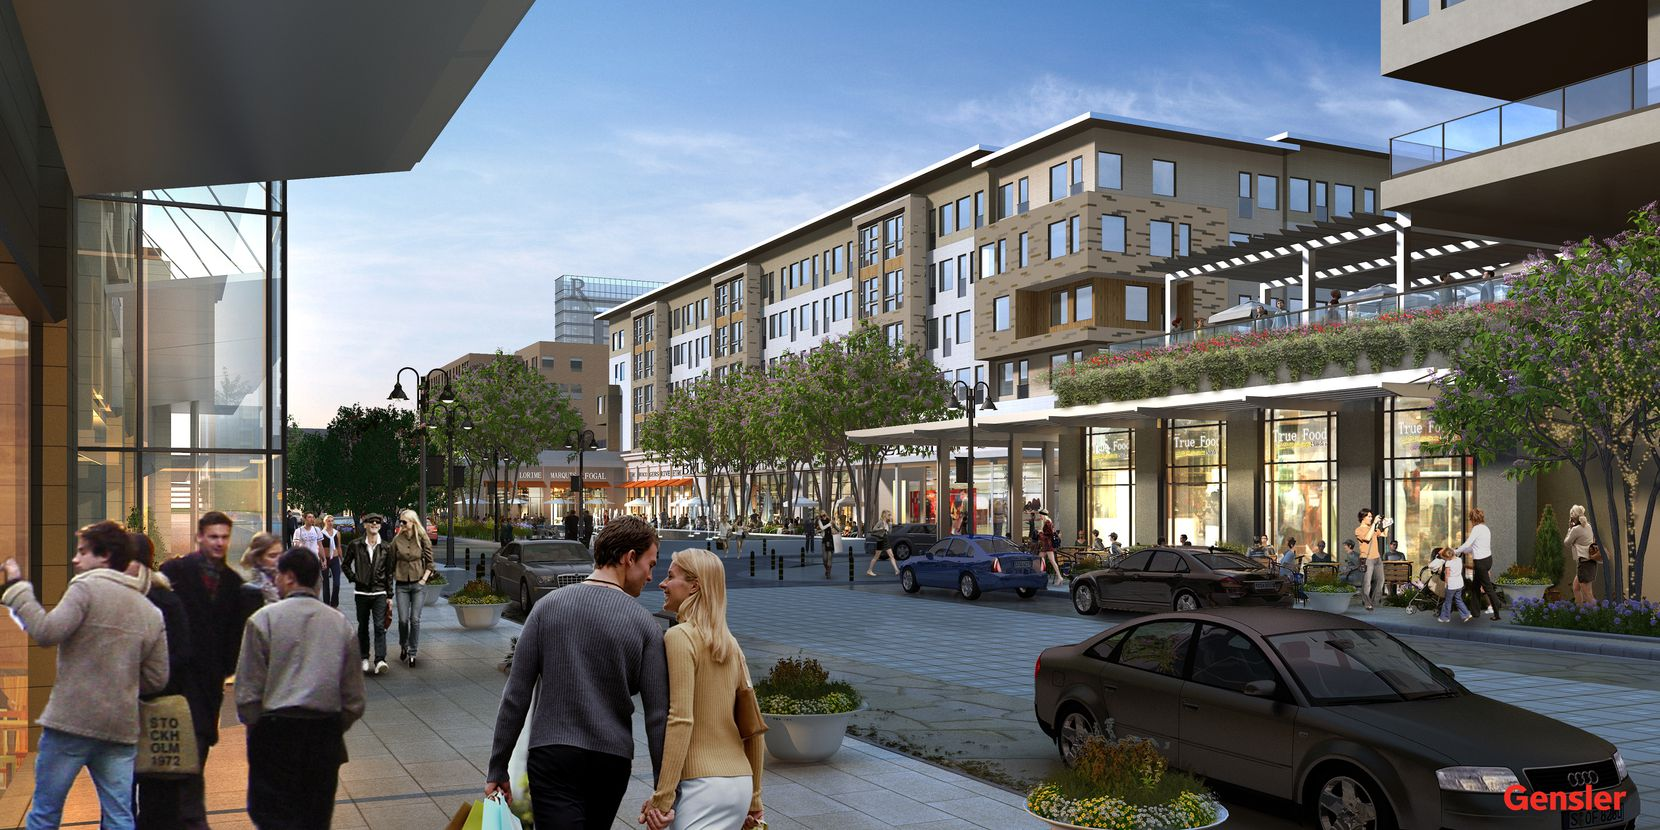 The first shops and restaurants open in the $500 million Legacy West Urban Village in March.